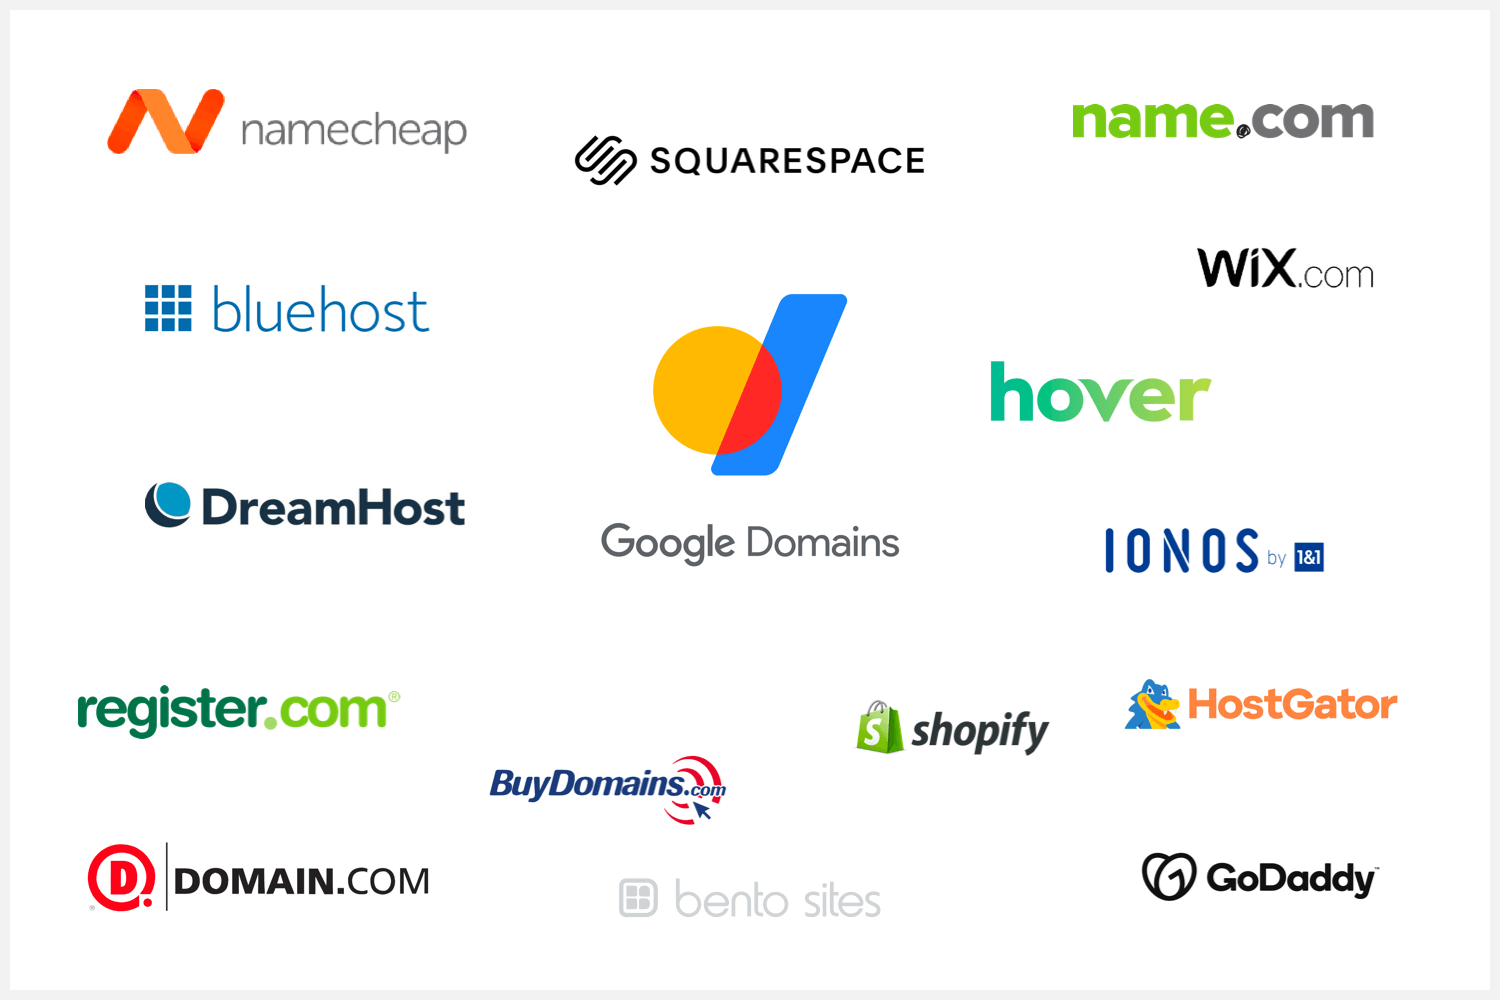 About a dozen logos of the most popular domain registrars